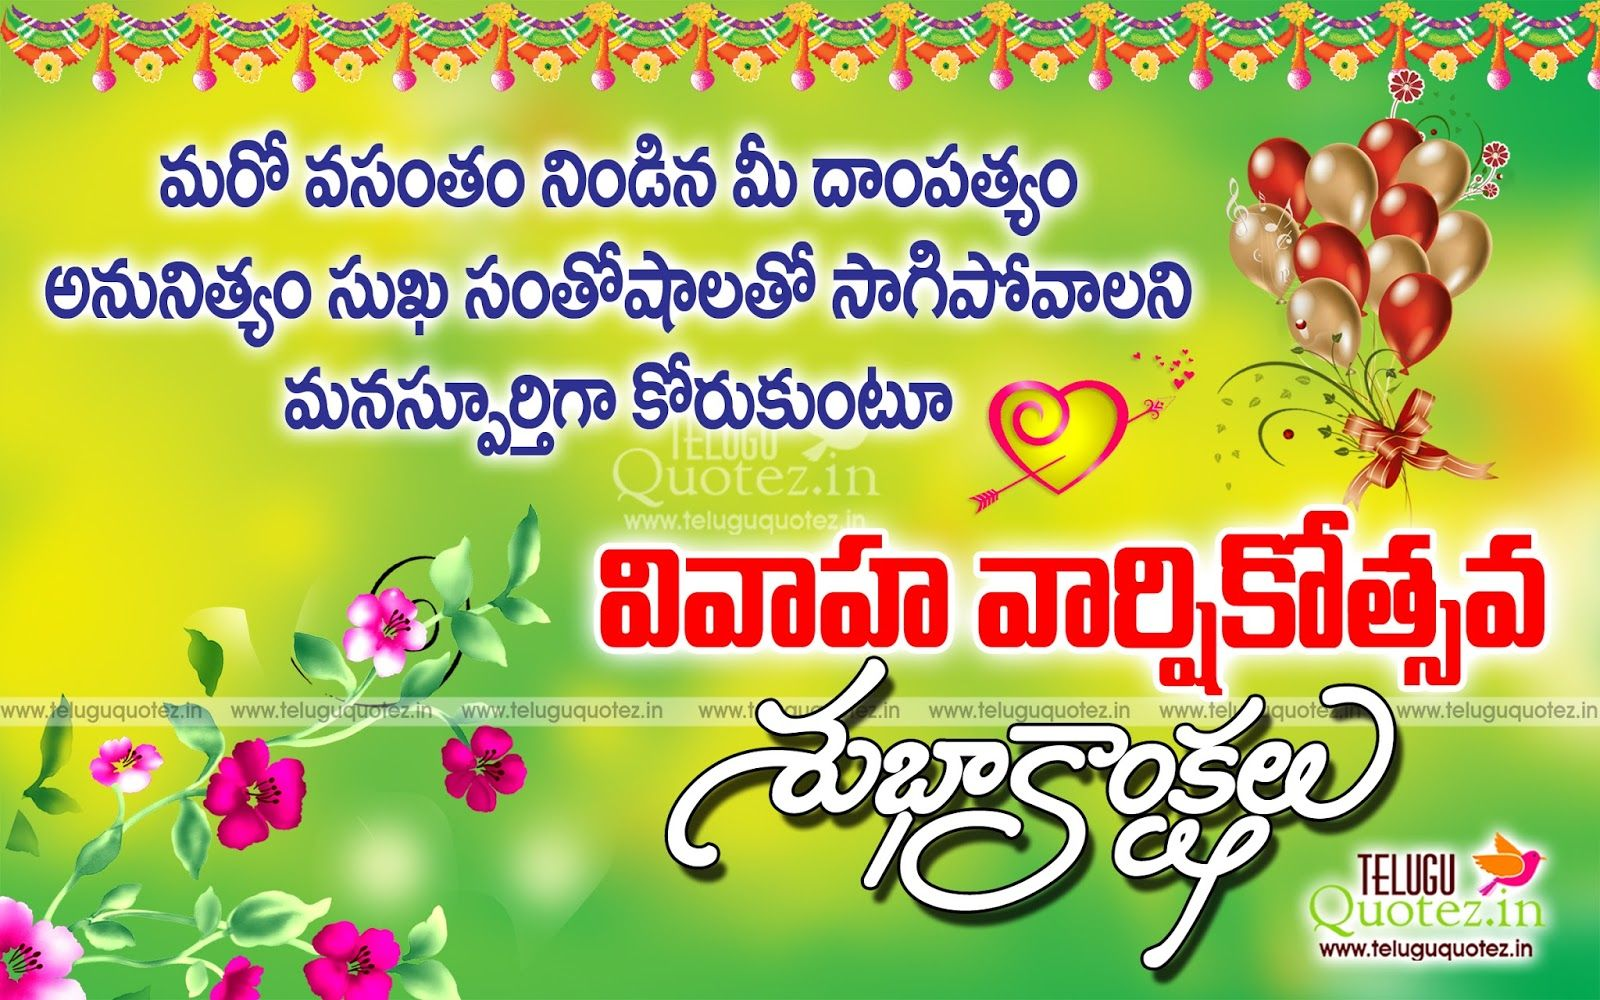 Best telugu marriage anniversary greetings wedding wishes sms best telugu marriage anniversary greetings wedding wishes sms marriage anniversary telugu quotes marriage anniversary kristyandbryce Gallery